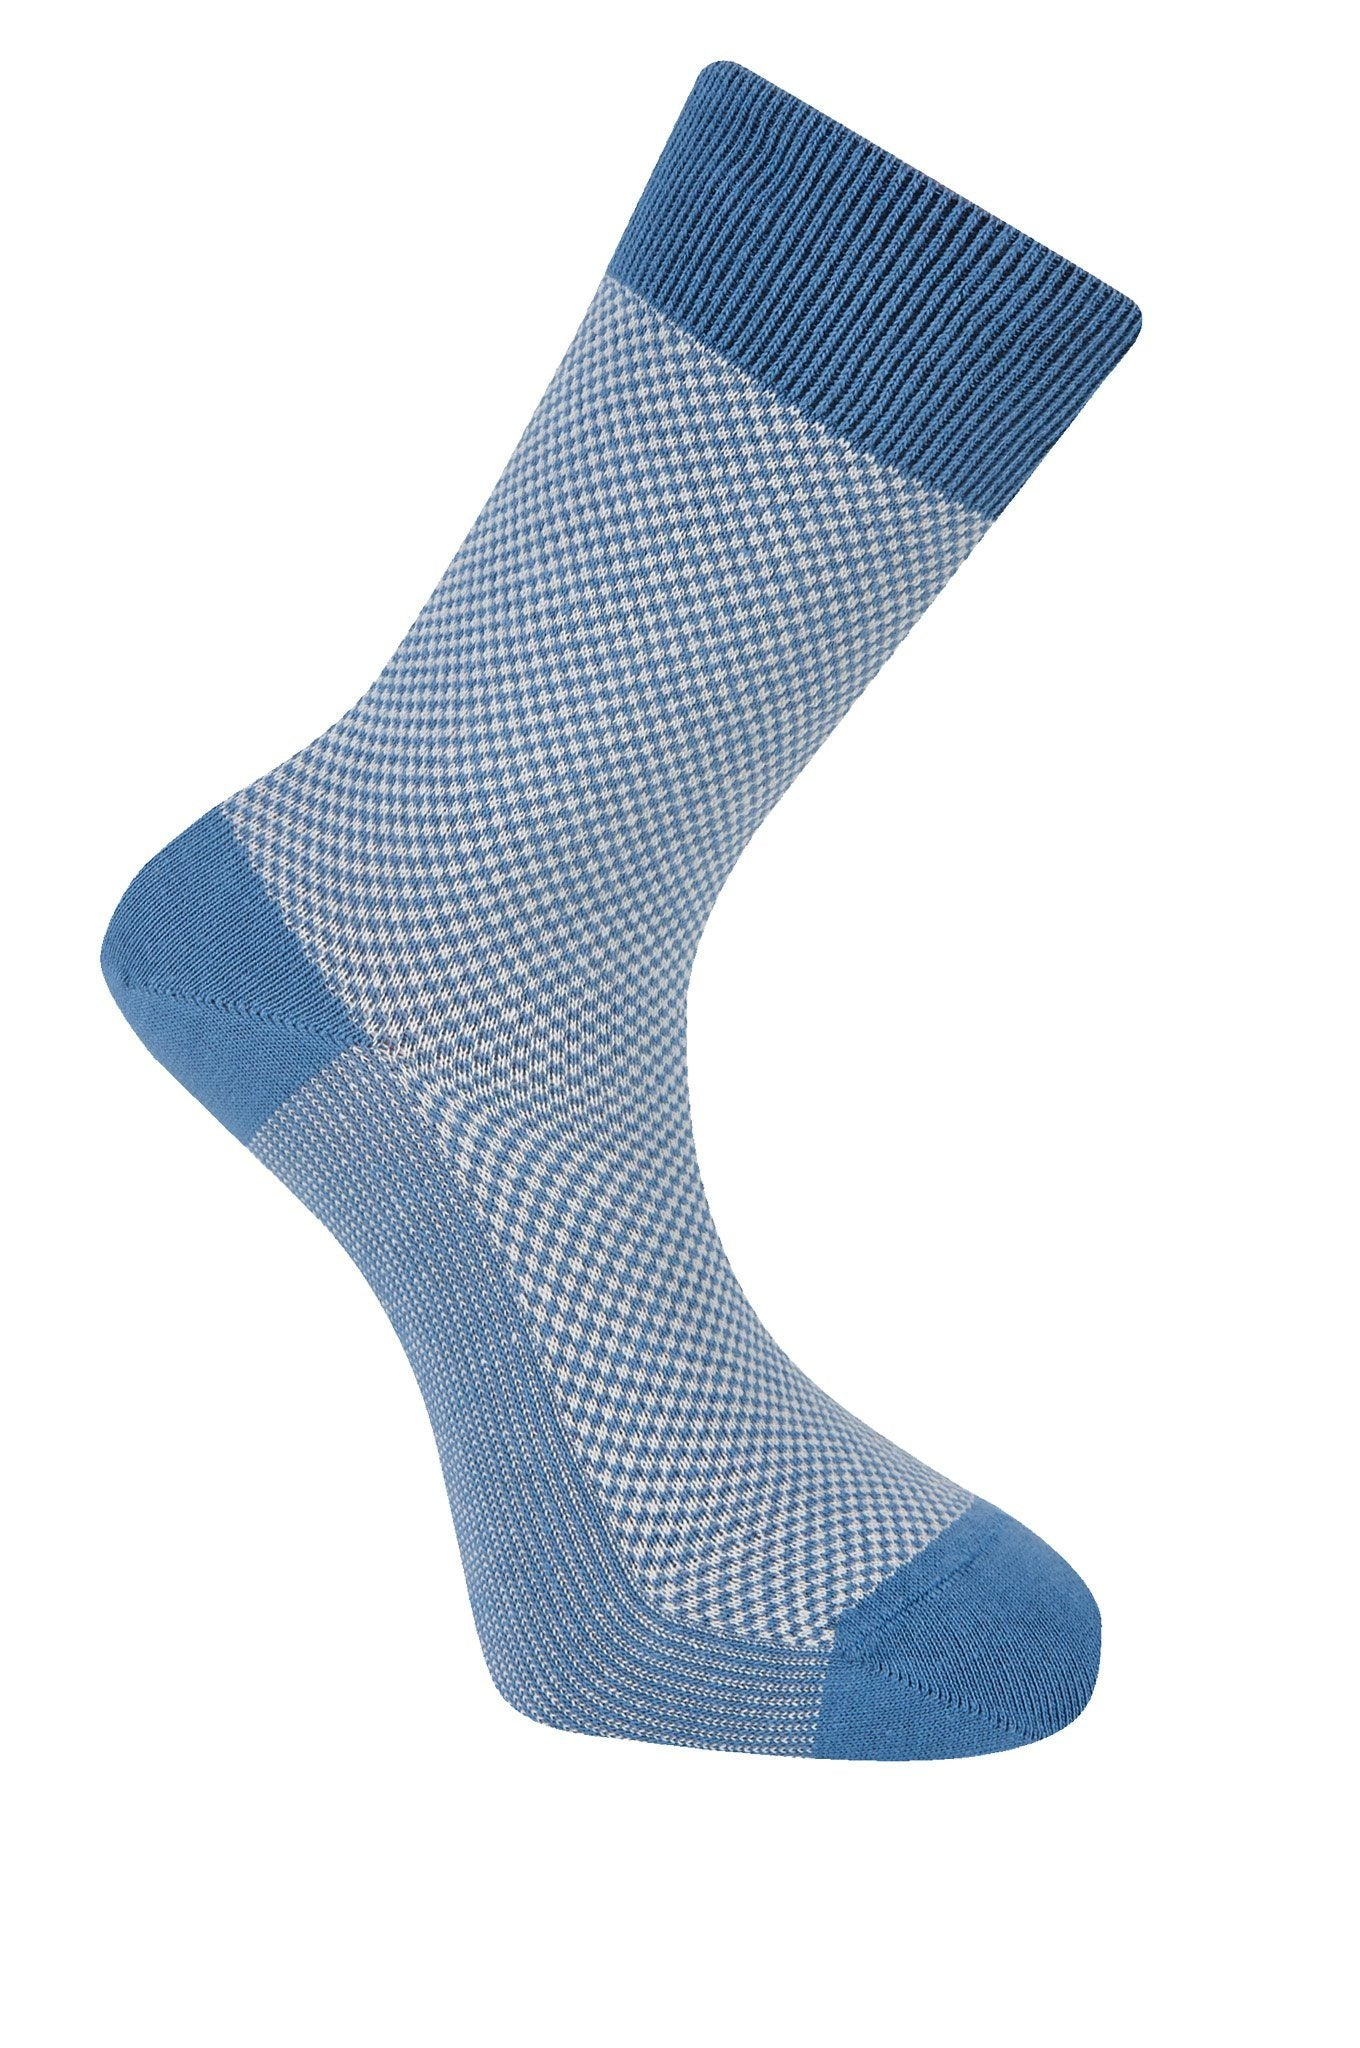 DOTS Hydron Organic Cotton Socks - Komodo Fashion